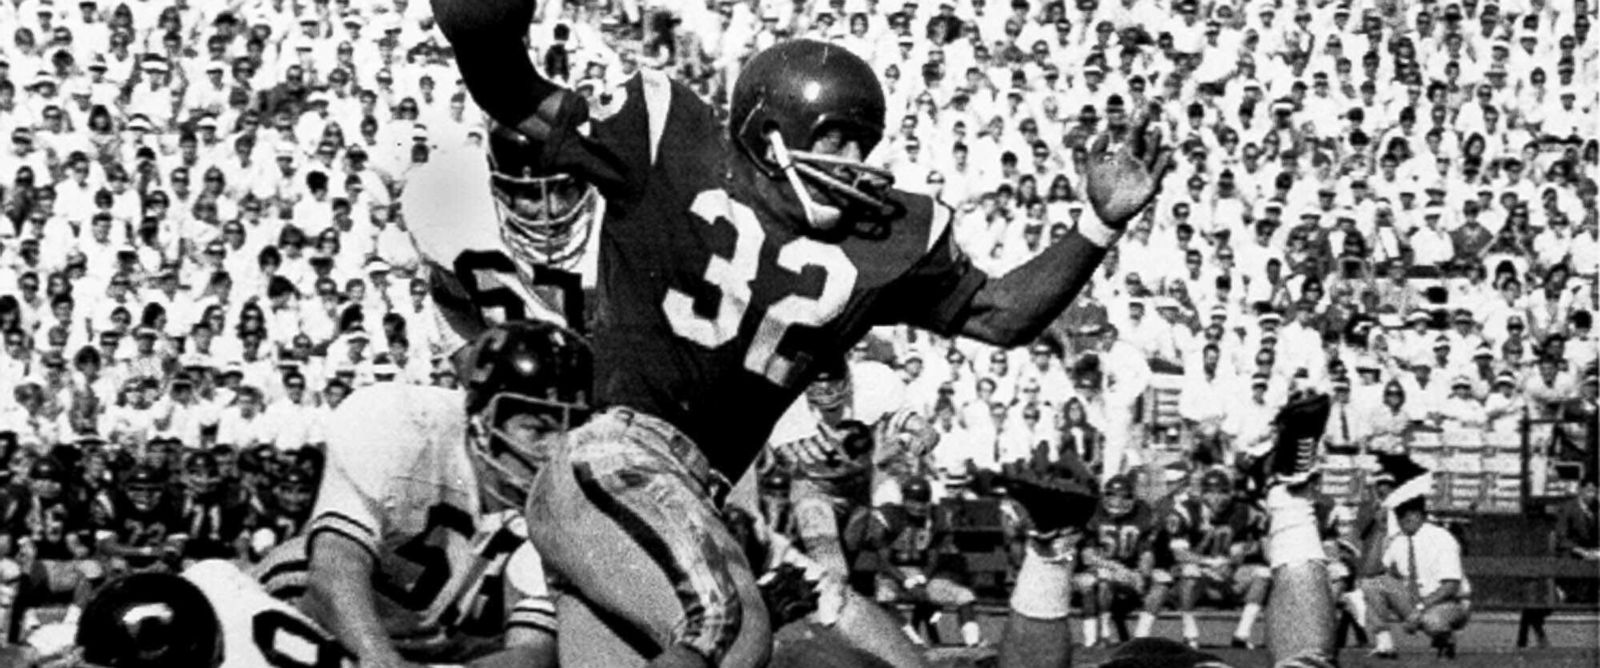 PHOTO: Southern Californias O.J. Simpson tries to break a tackle in this Nov. 9, 1968 file photo.